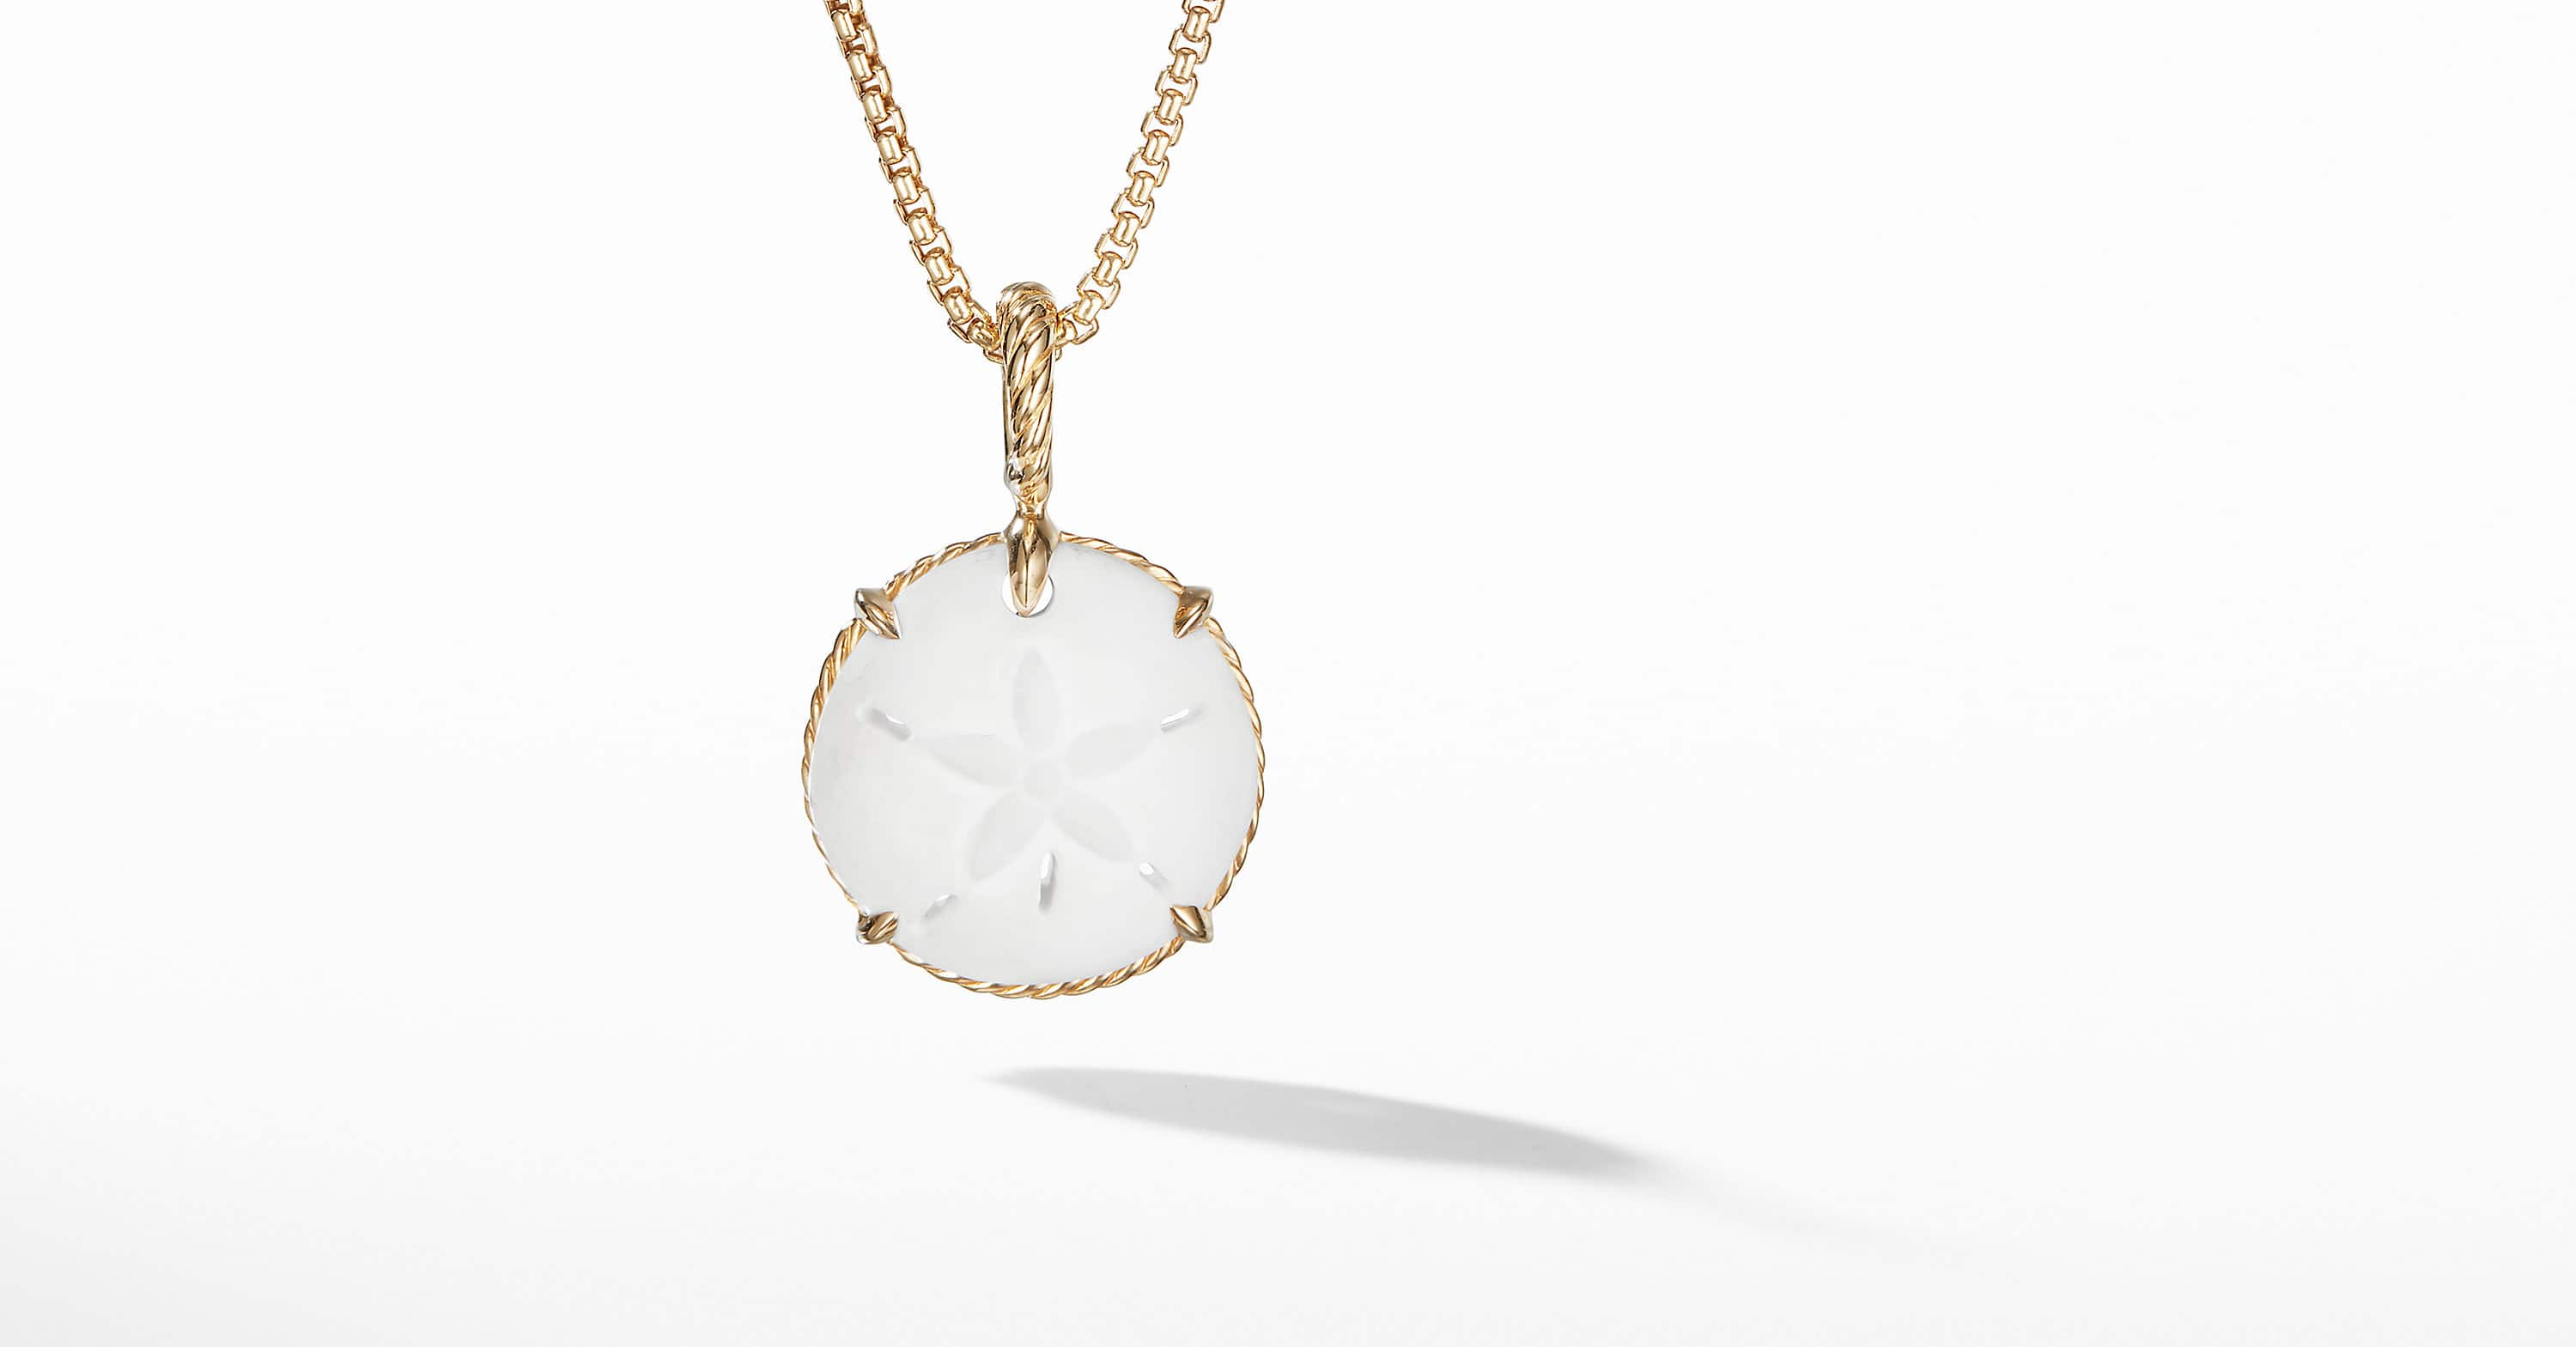 Sand Dollar Amulet with 18k Gold